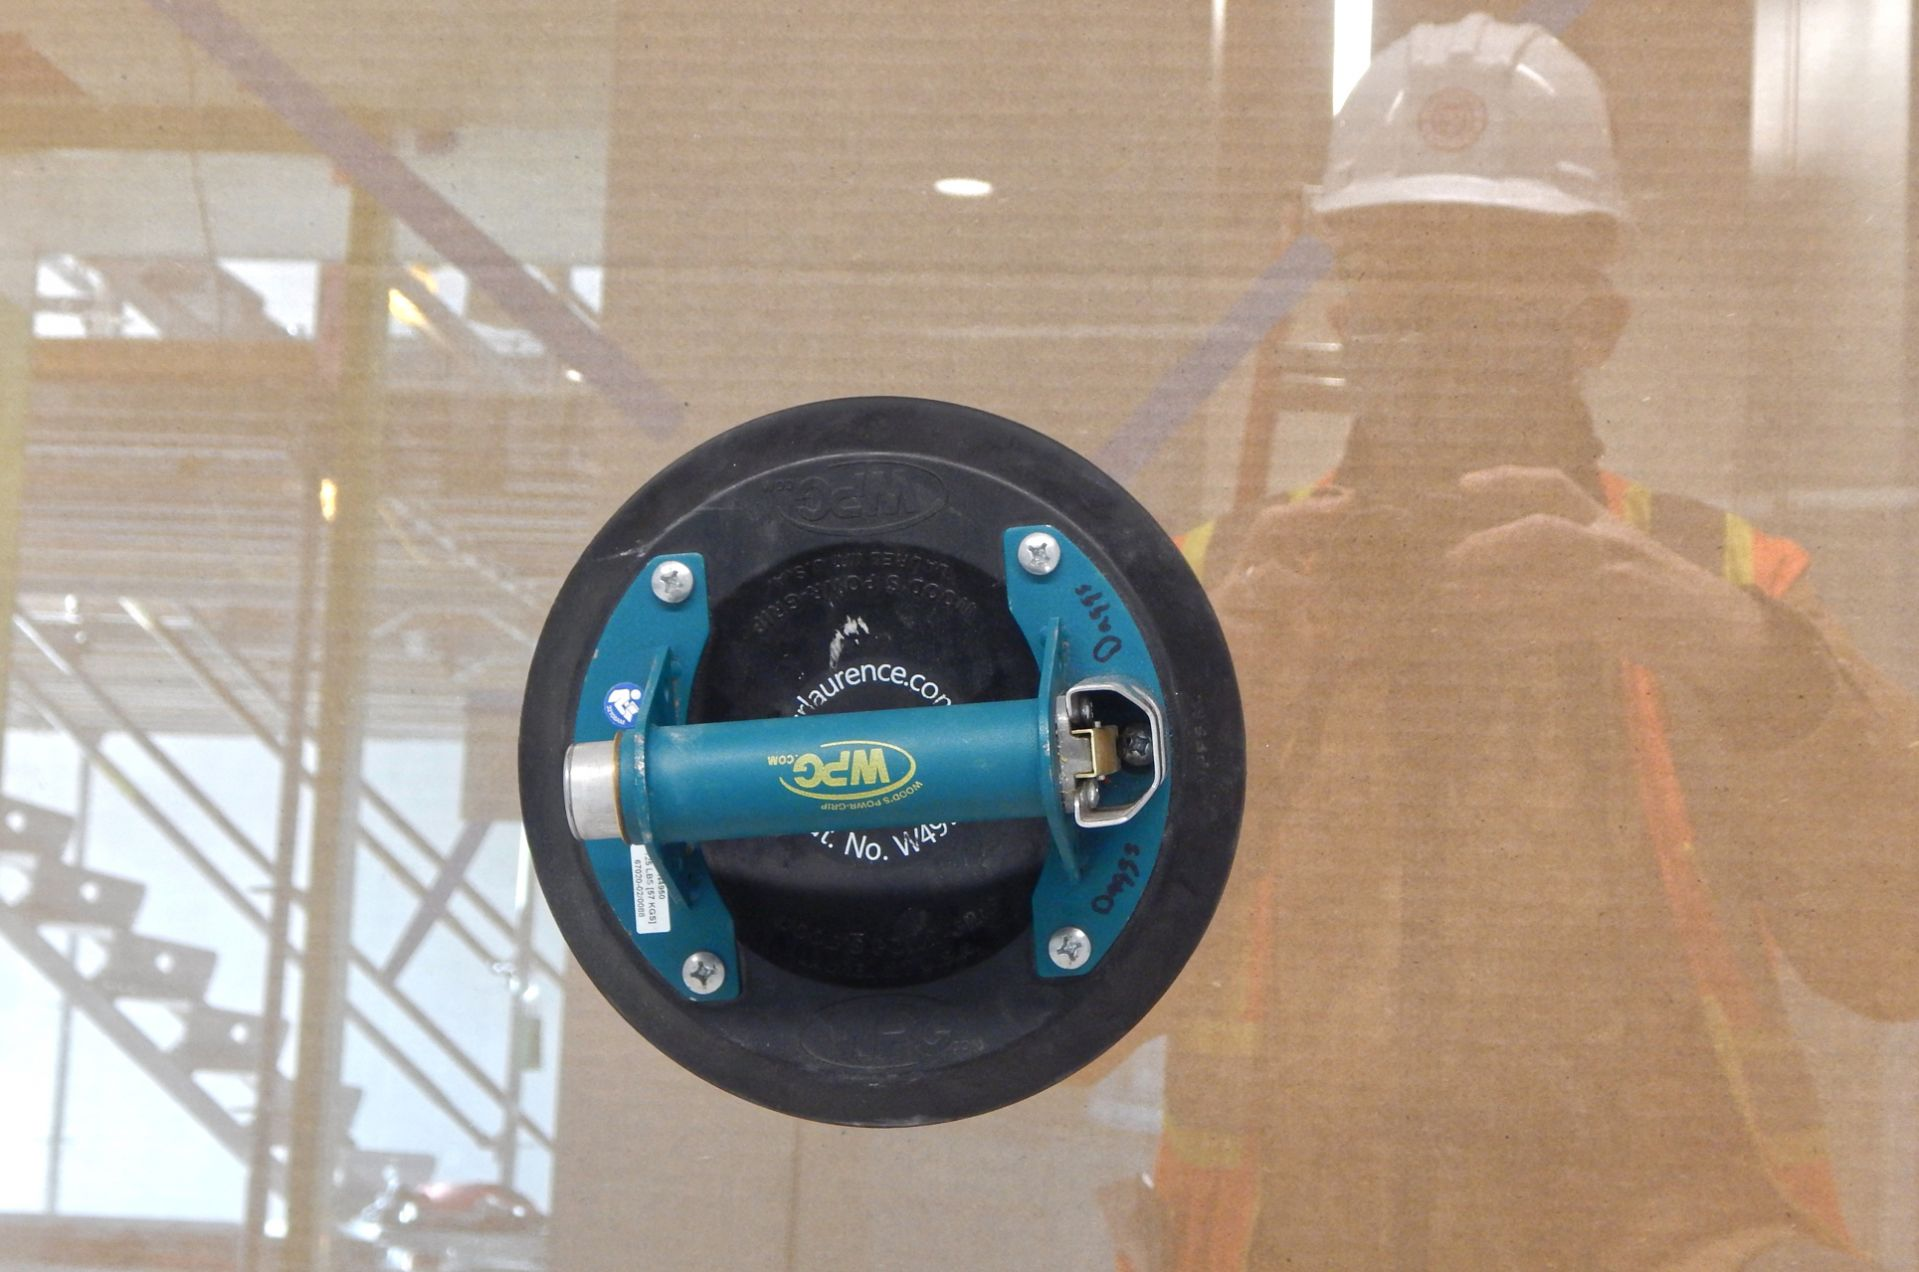 The disc-shaped object is a suction-cup used to handle panes of glass. The glass it's stuck to will be set in a door. (Doug Hubley/Bates College)